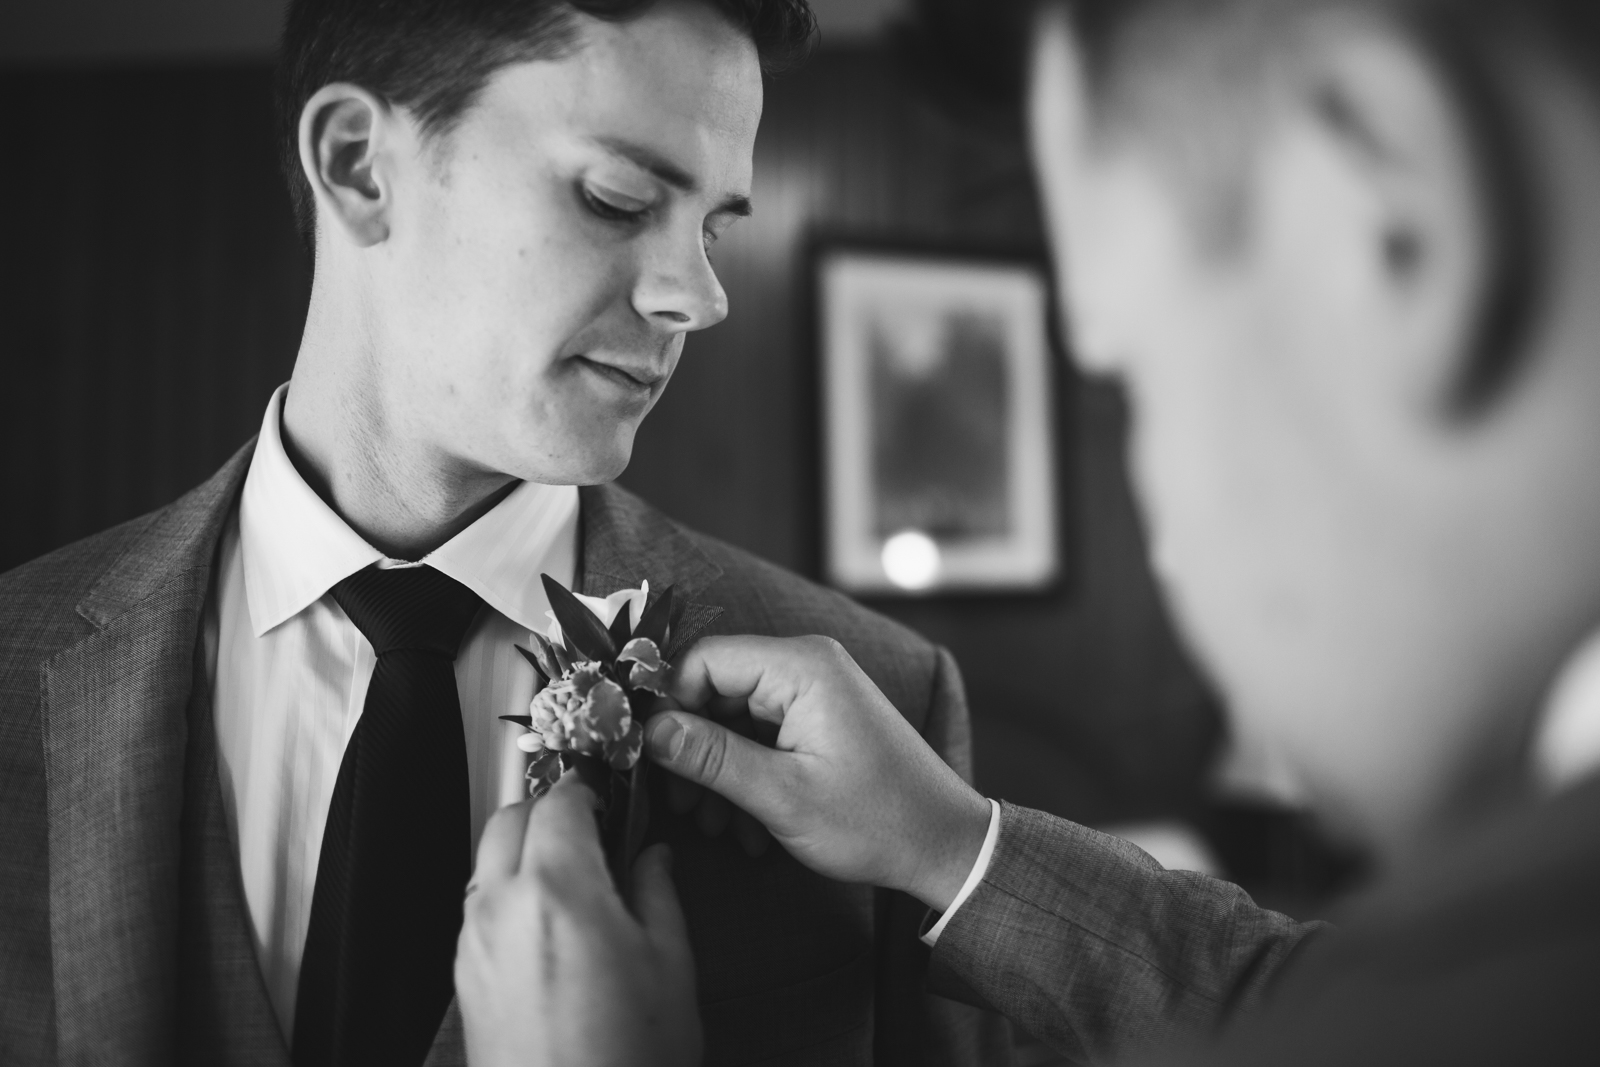 24Willow_and_Wolf_Photography_Katie_and_James_Waterton_Wedding_Blog211-Willow_and_Wolf_Photography_Katie_and_James_Waterton_Wedding_GettingReady_ATP_4286